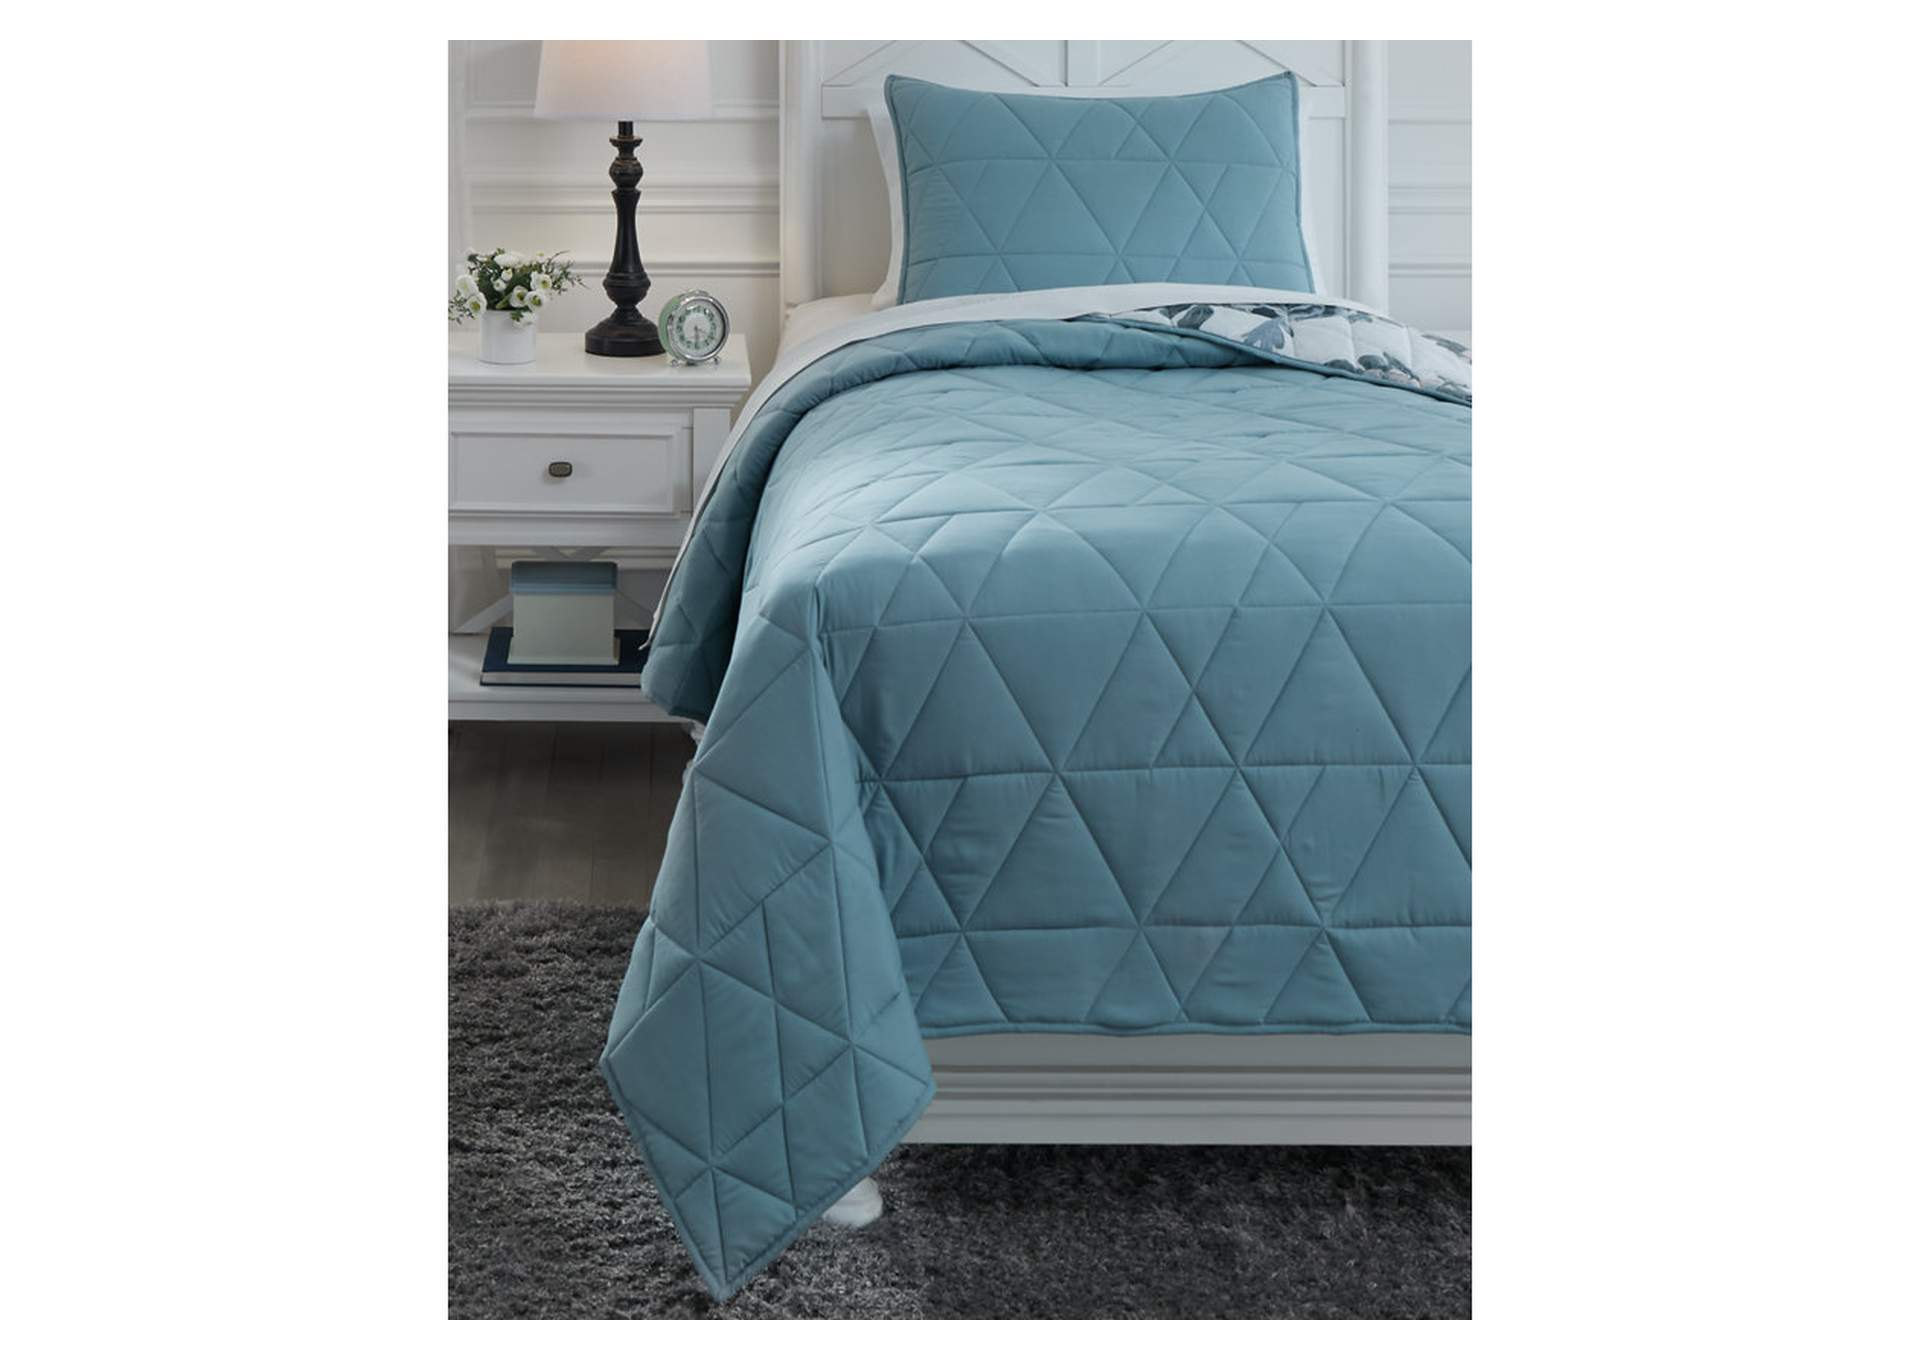 Kiandra Twin Quilt Set,Signature Design By Ashley